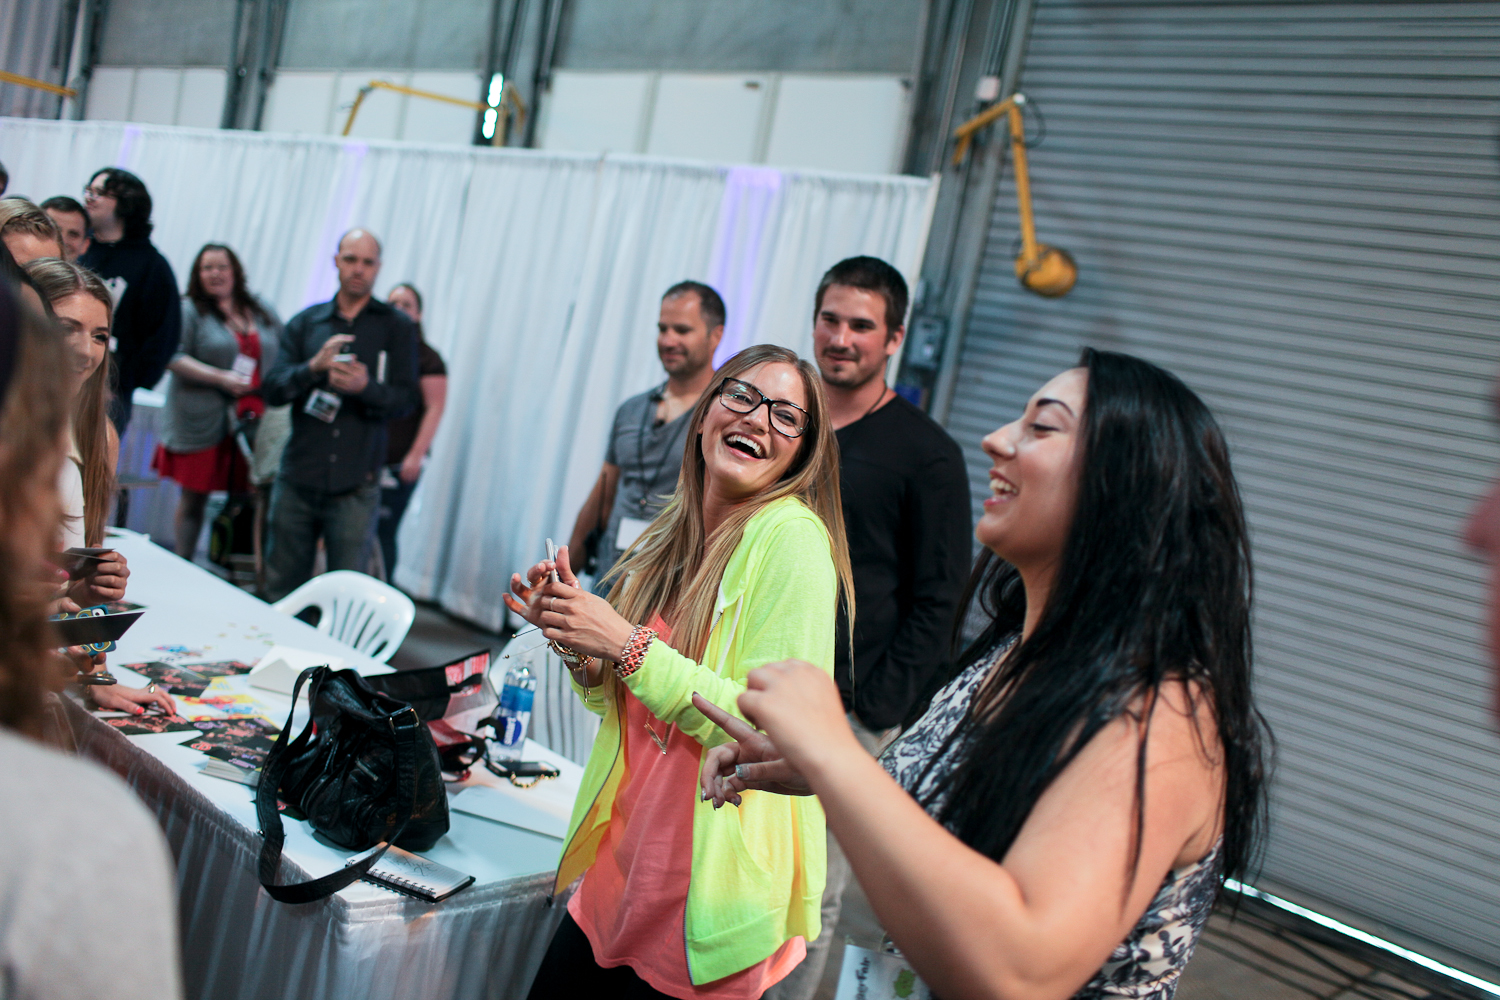 iJustine at the first ever Vlogger Fair in Seattle Saturday June 8 at the Port of Seattle Terminal 5.